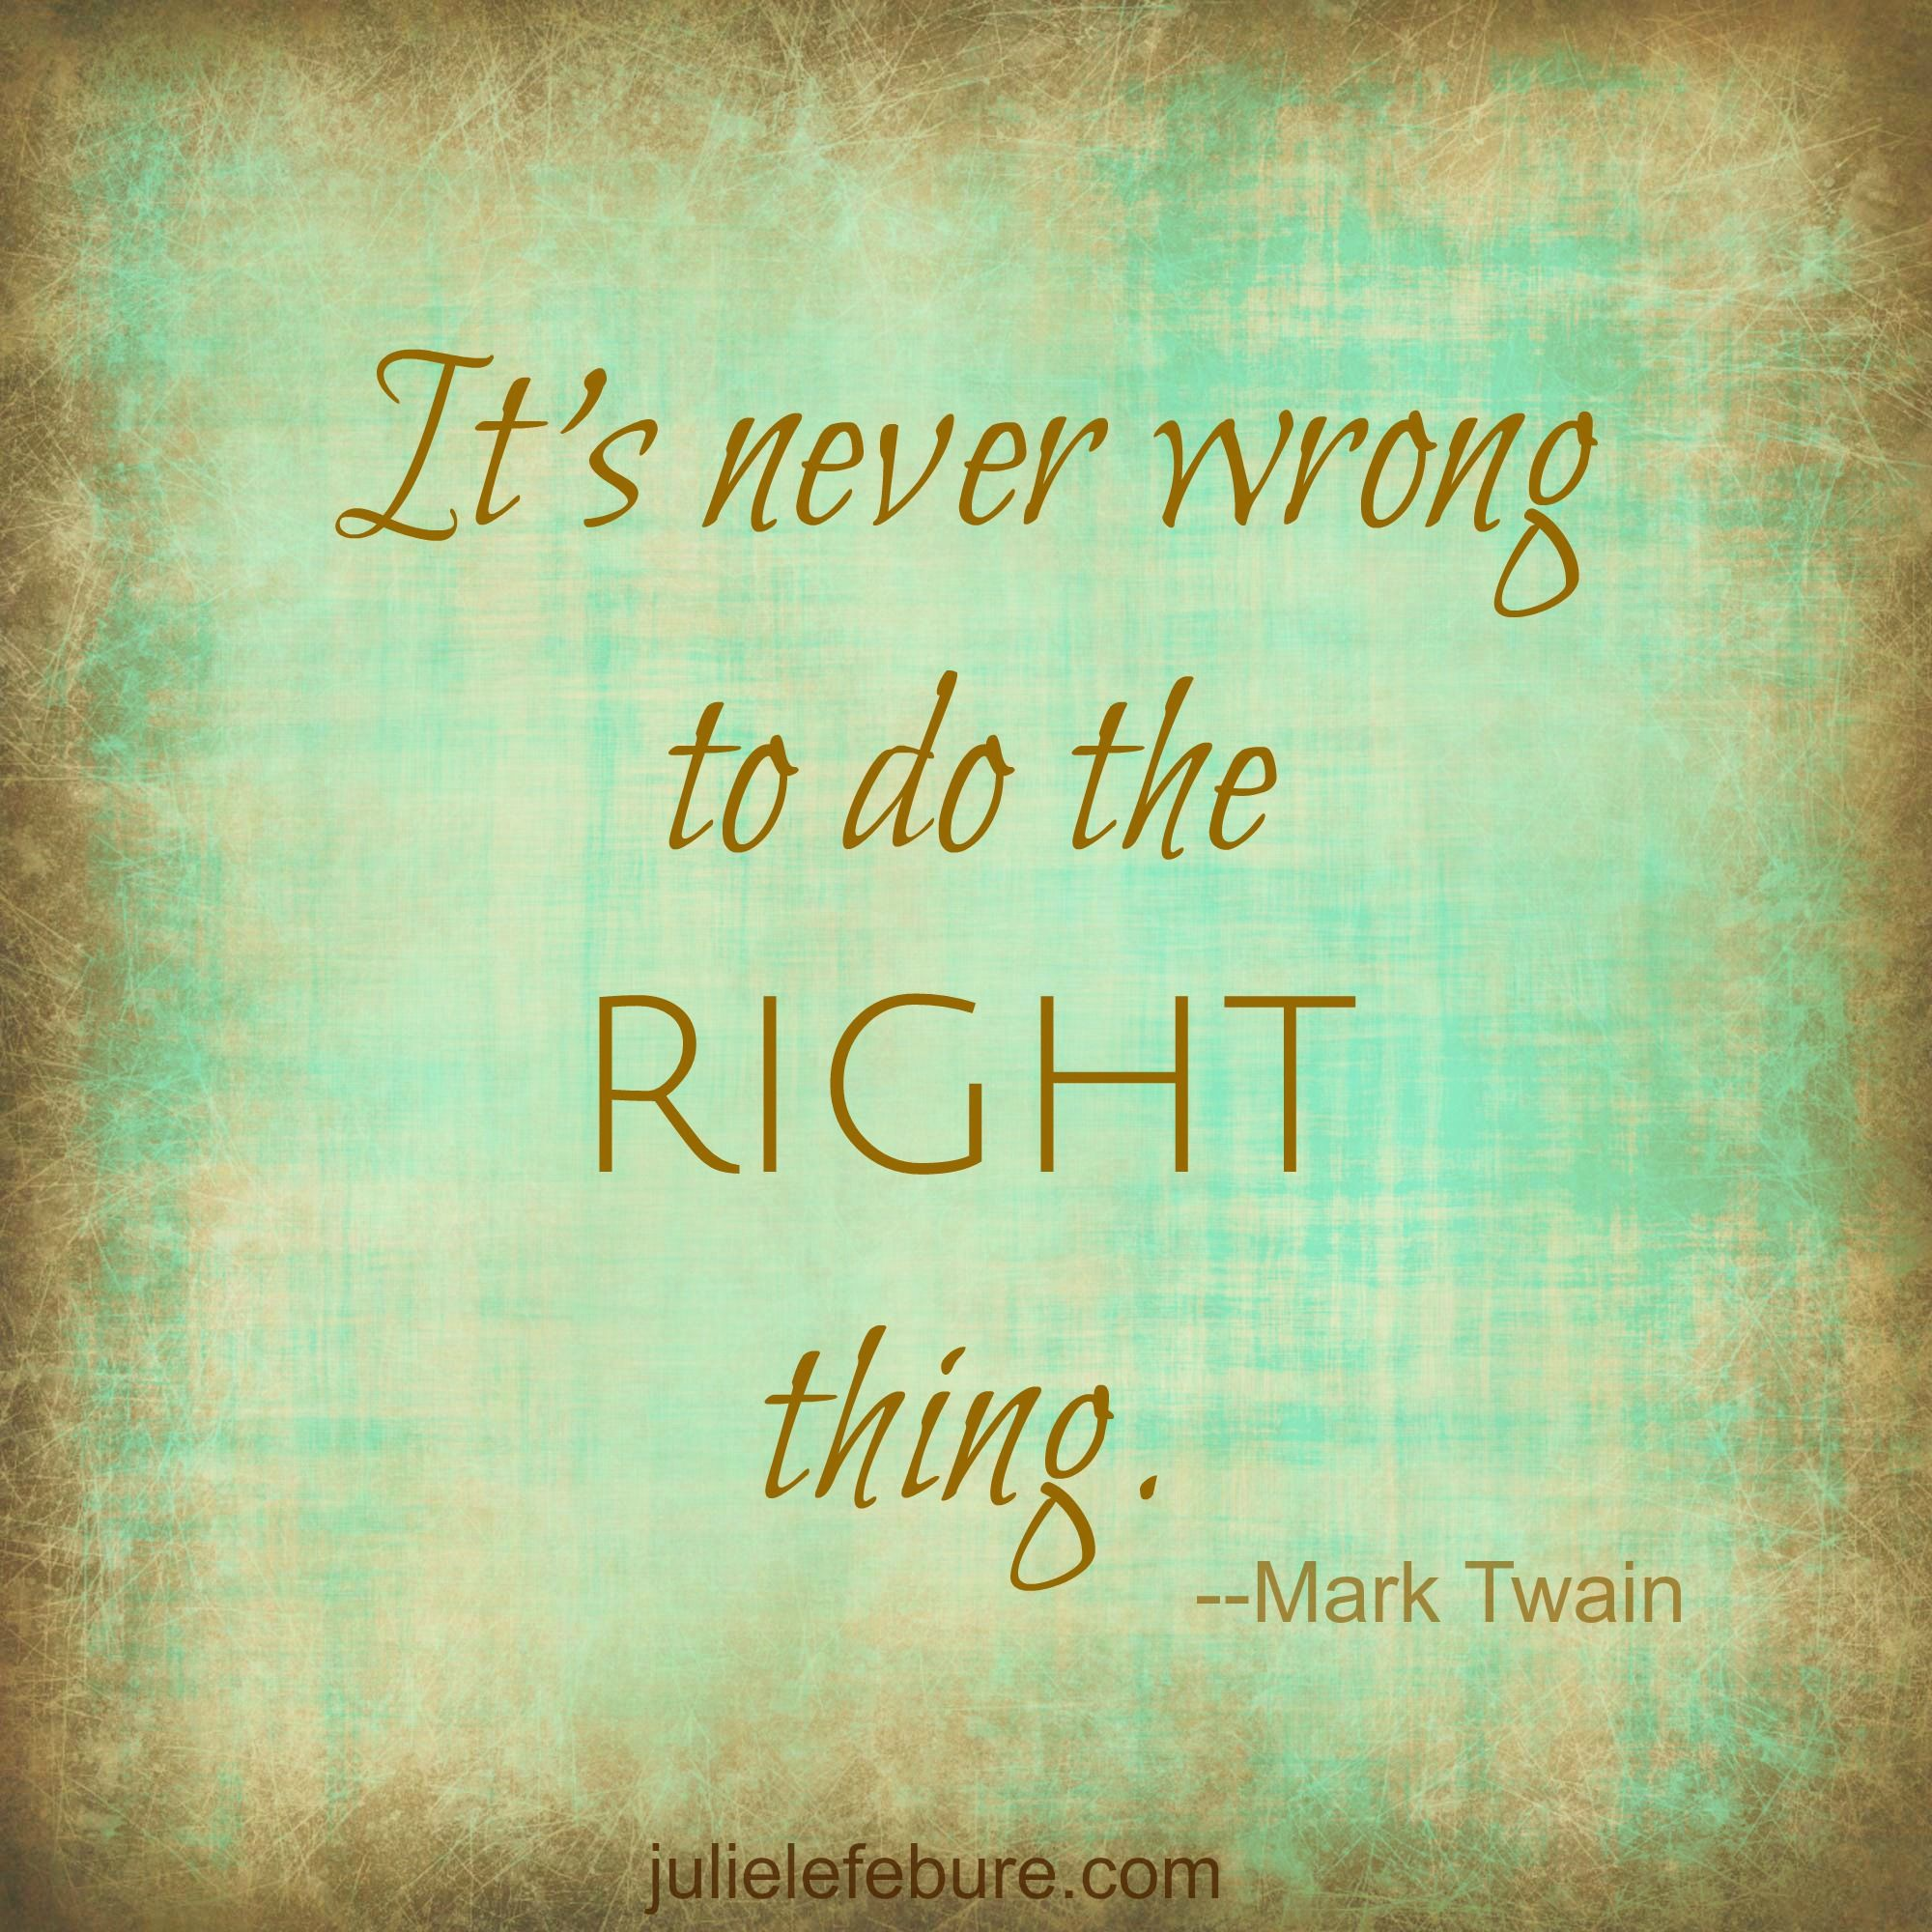 It's Never Wrong To Do The Right Thing - Julie Lefebure | Integrity quotes, Inspirational  quotes, Wise words quotes